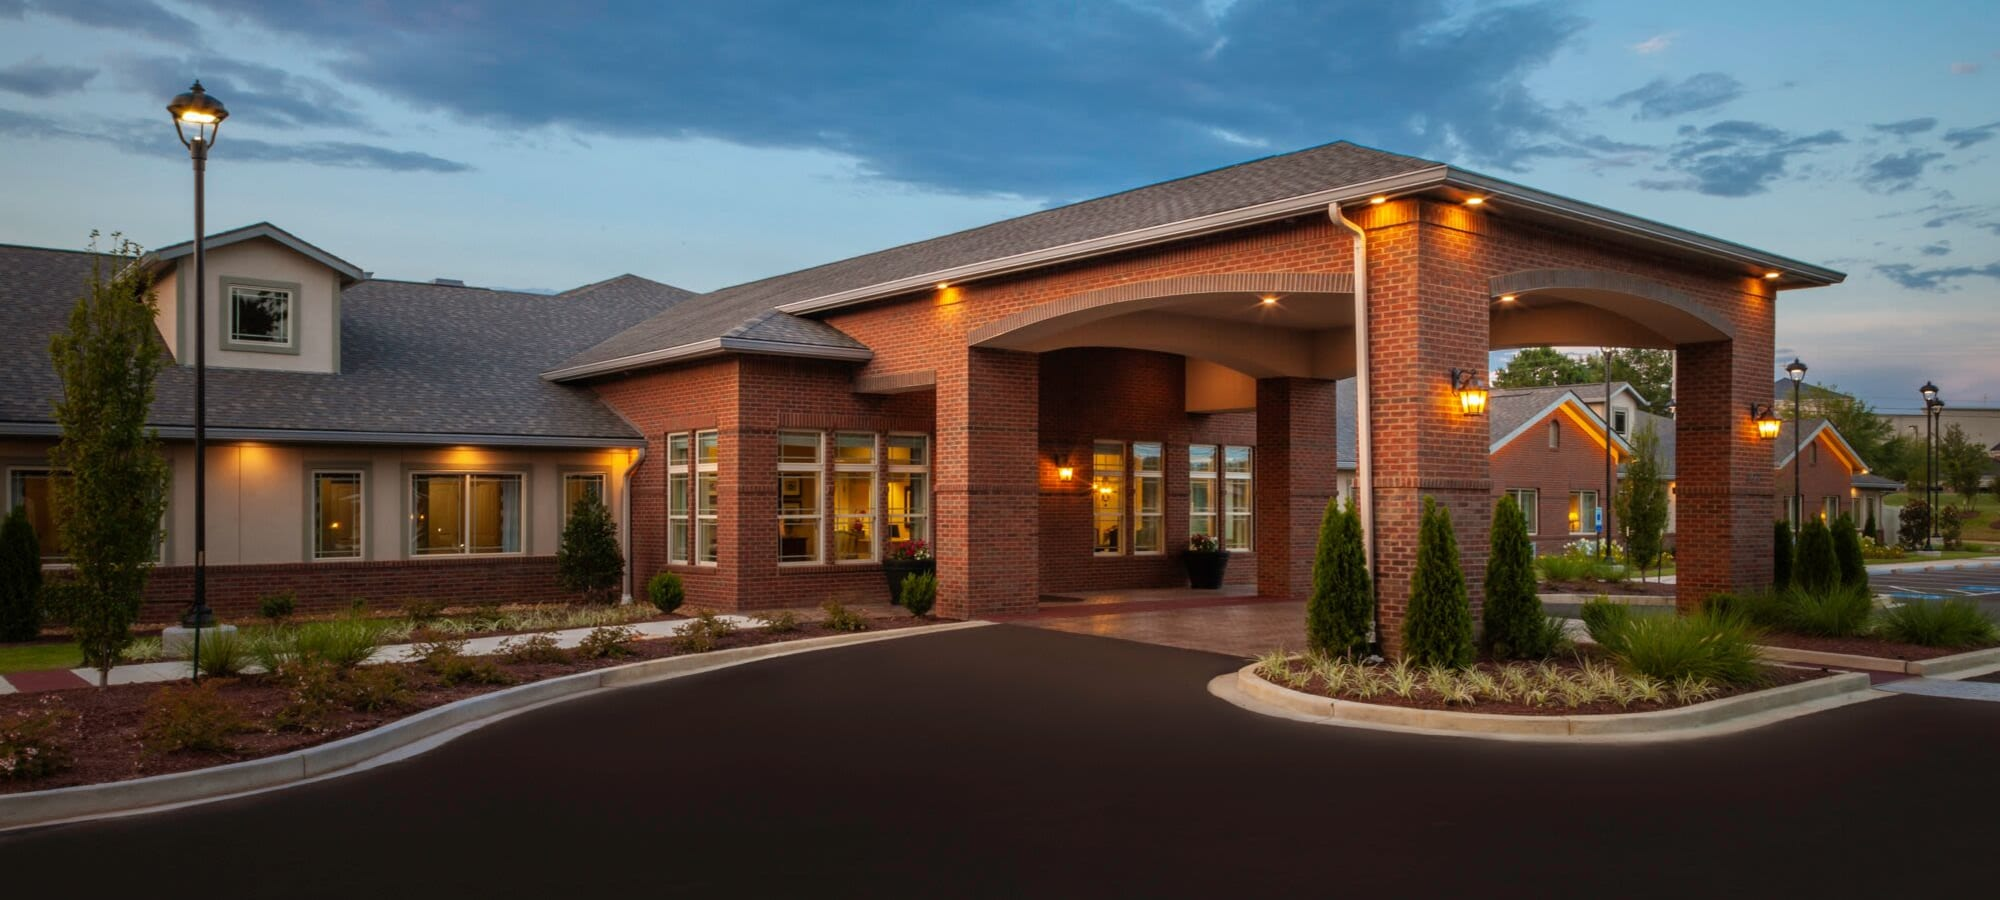 JEA Senior Living exterior